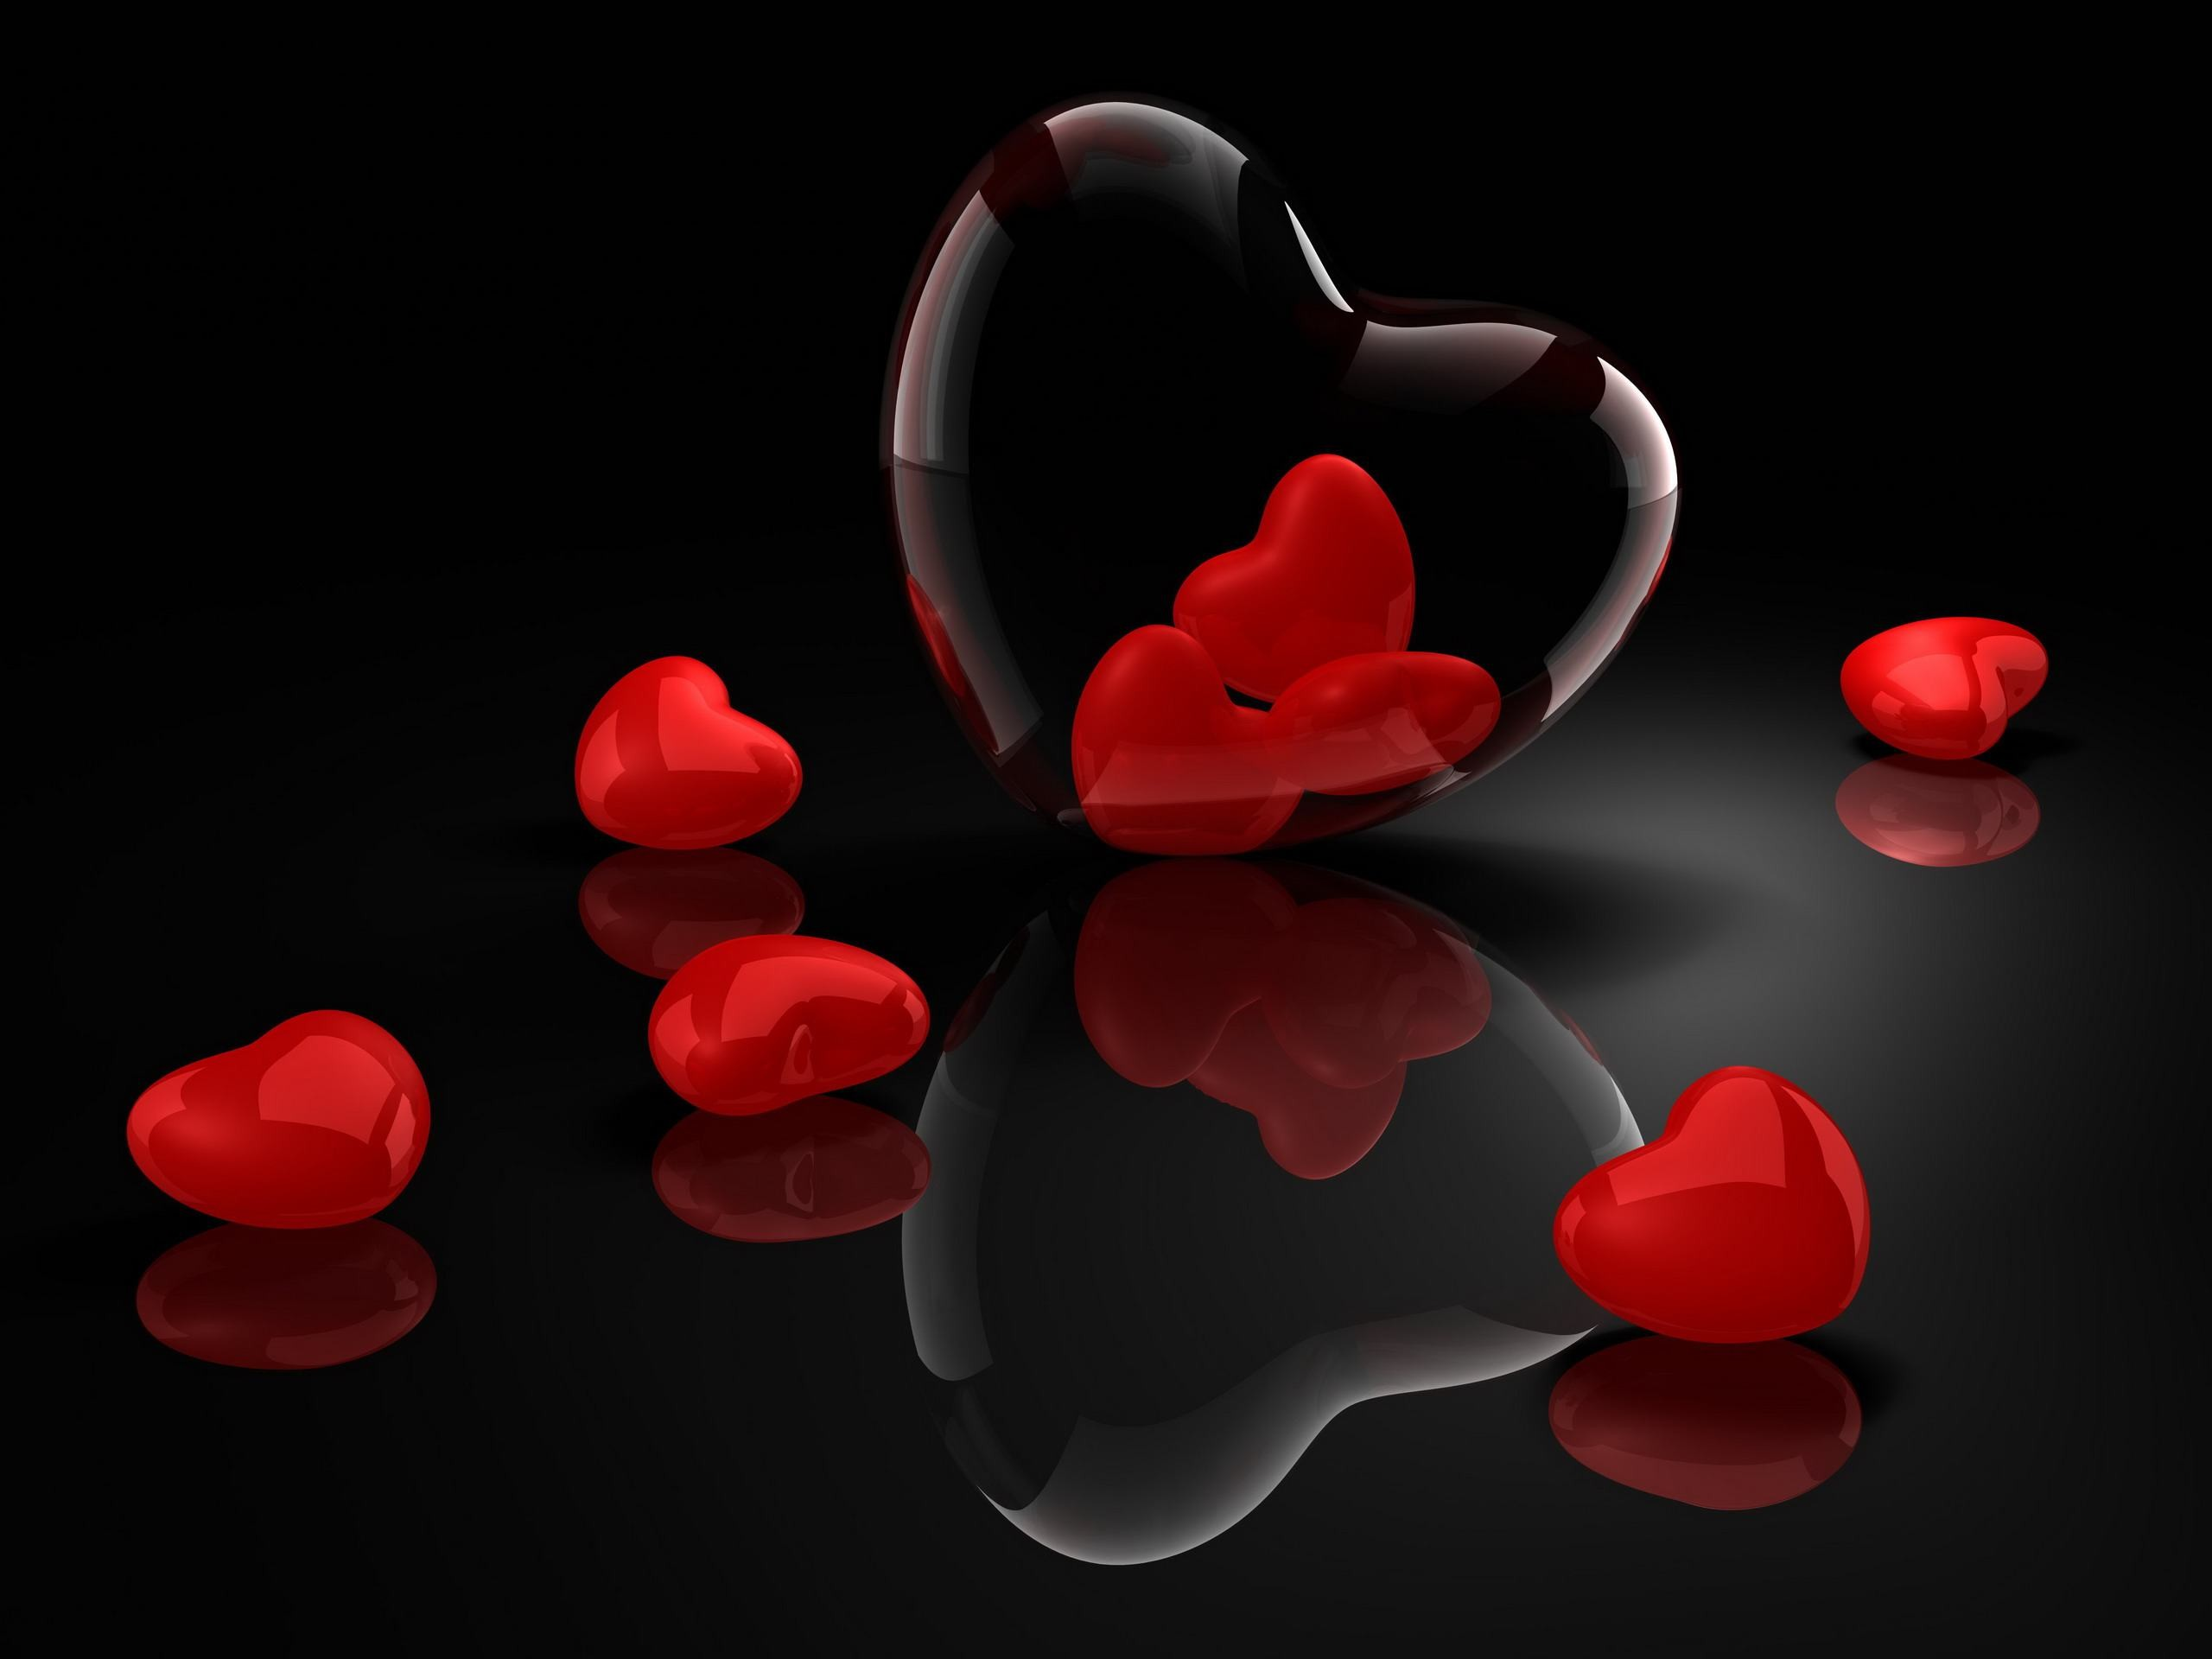 Black and Red Heart Wallpaper 61 images 2560x1920